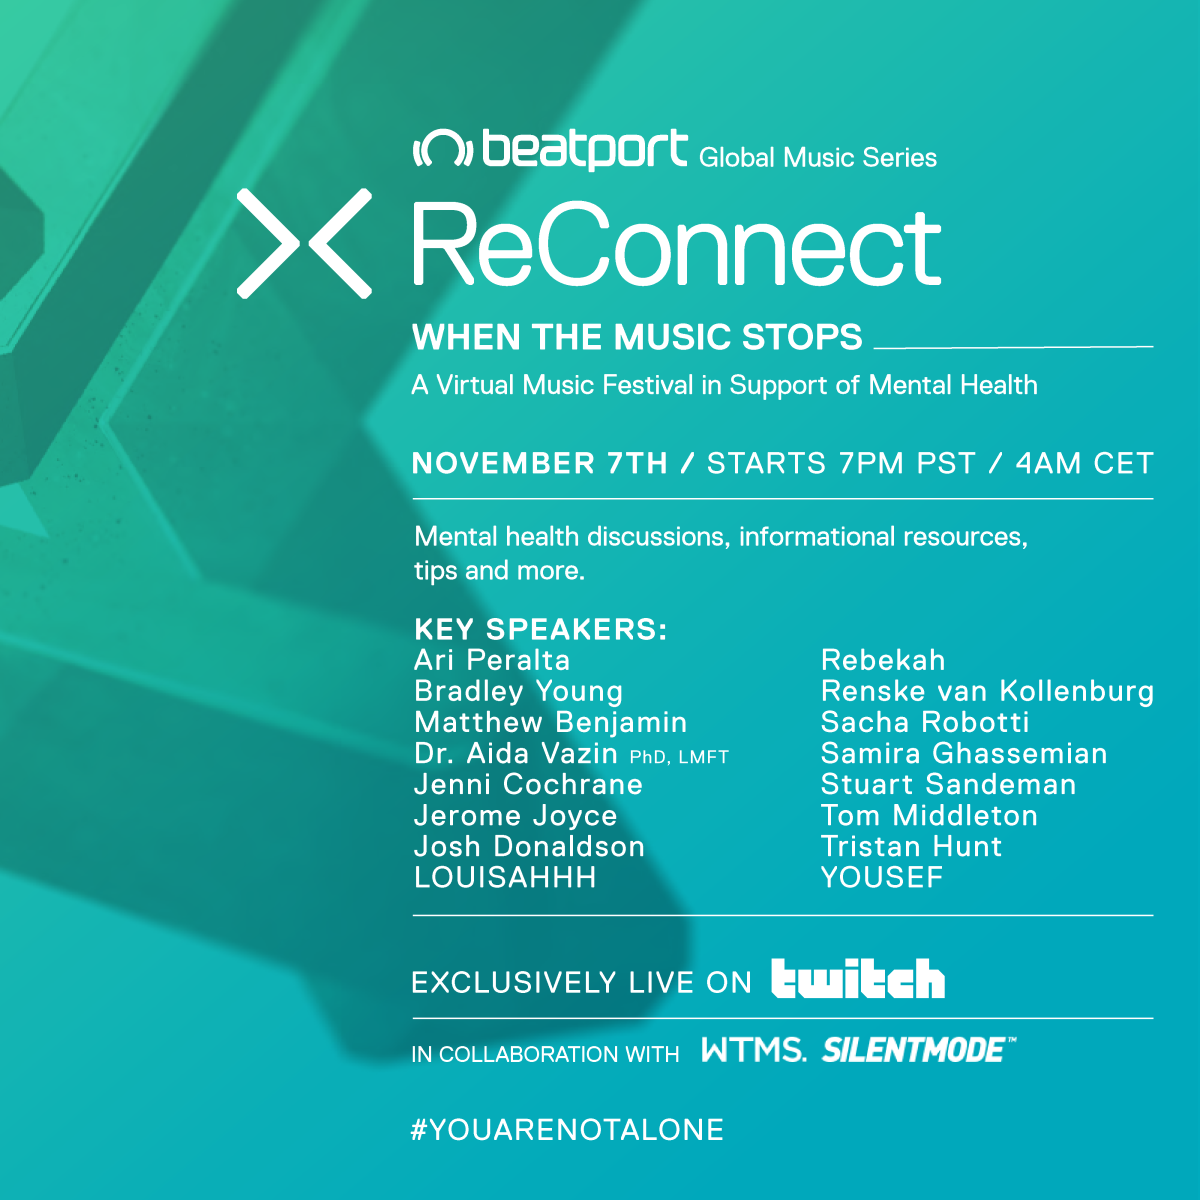 Beatport_ReConnect_WhenTheMusicStops_InstaFeed_Slide2